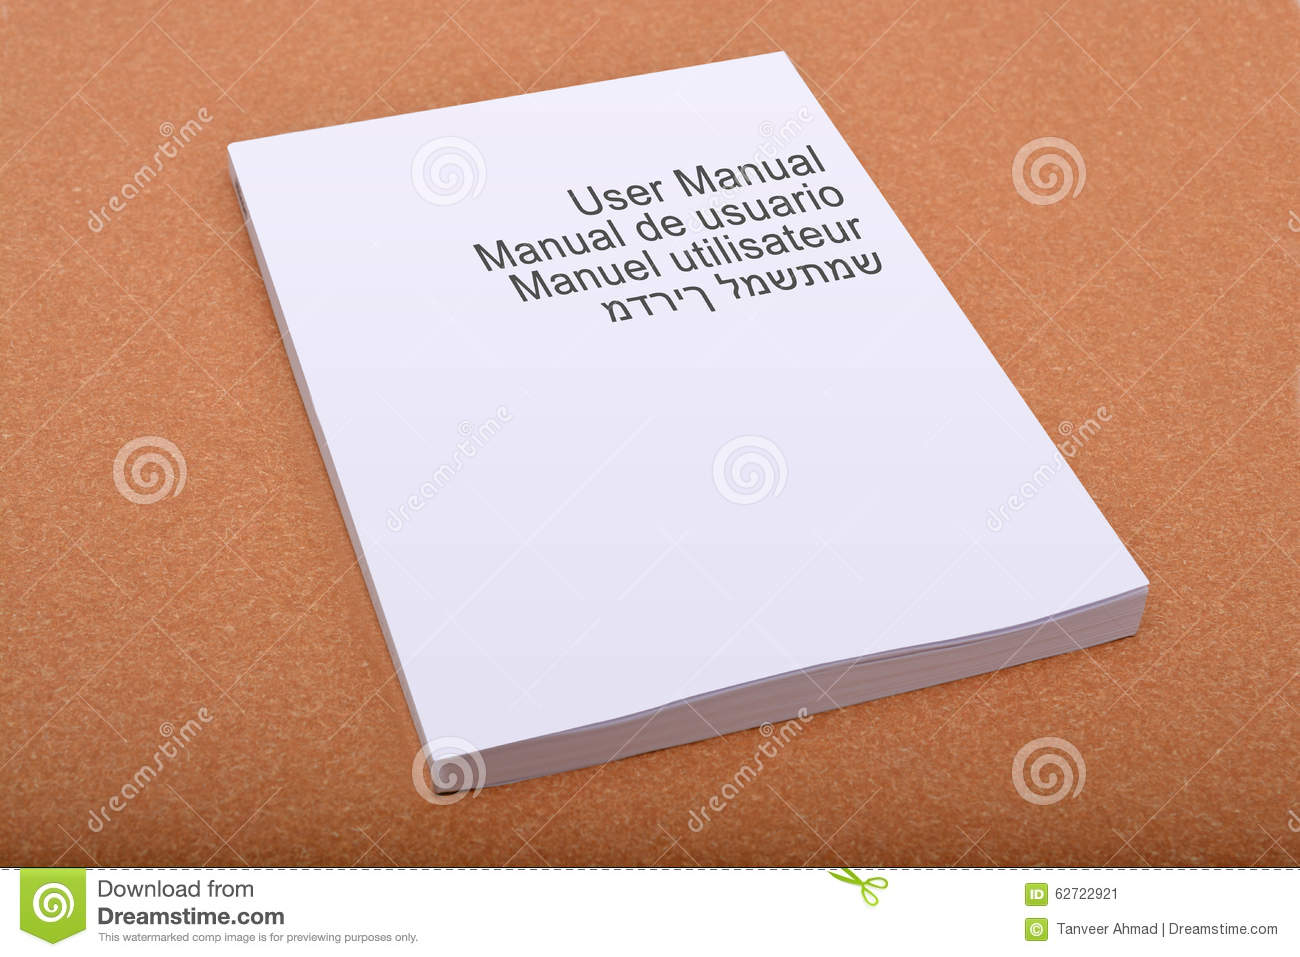 manual usuario android 23 espanol